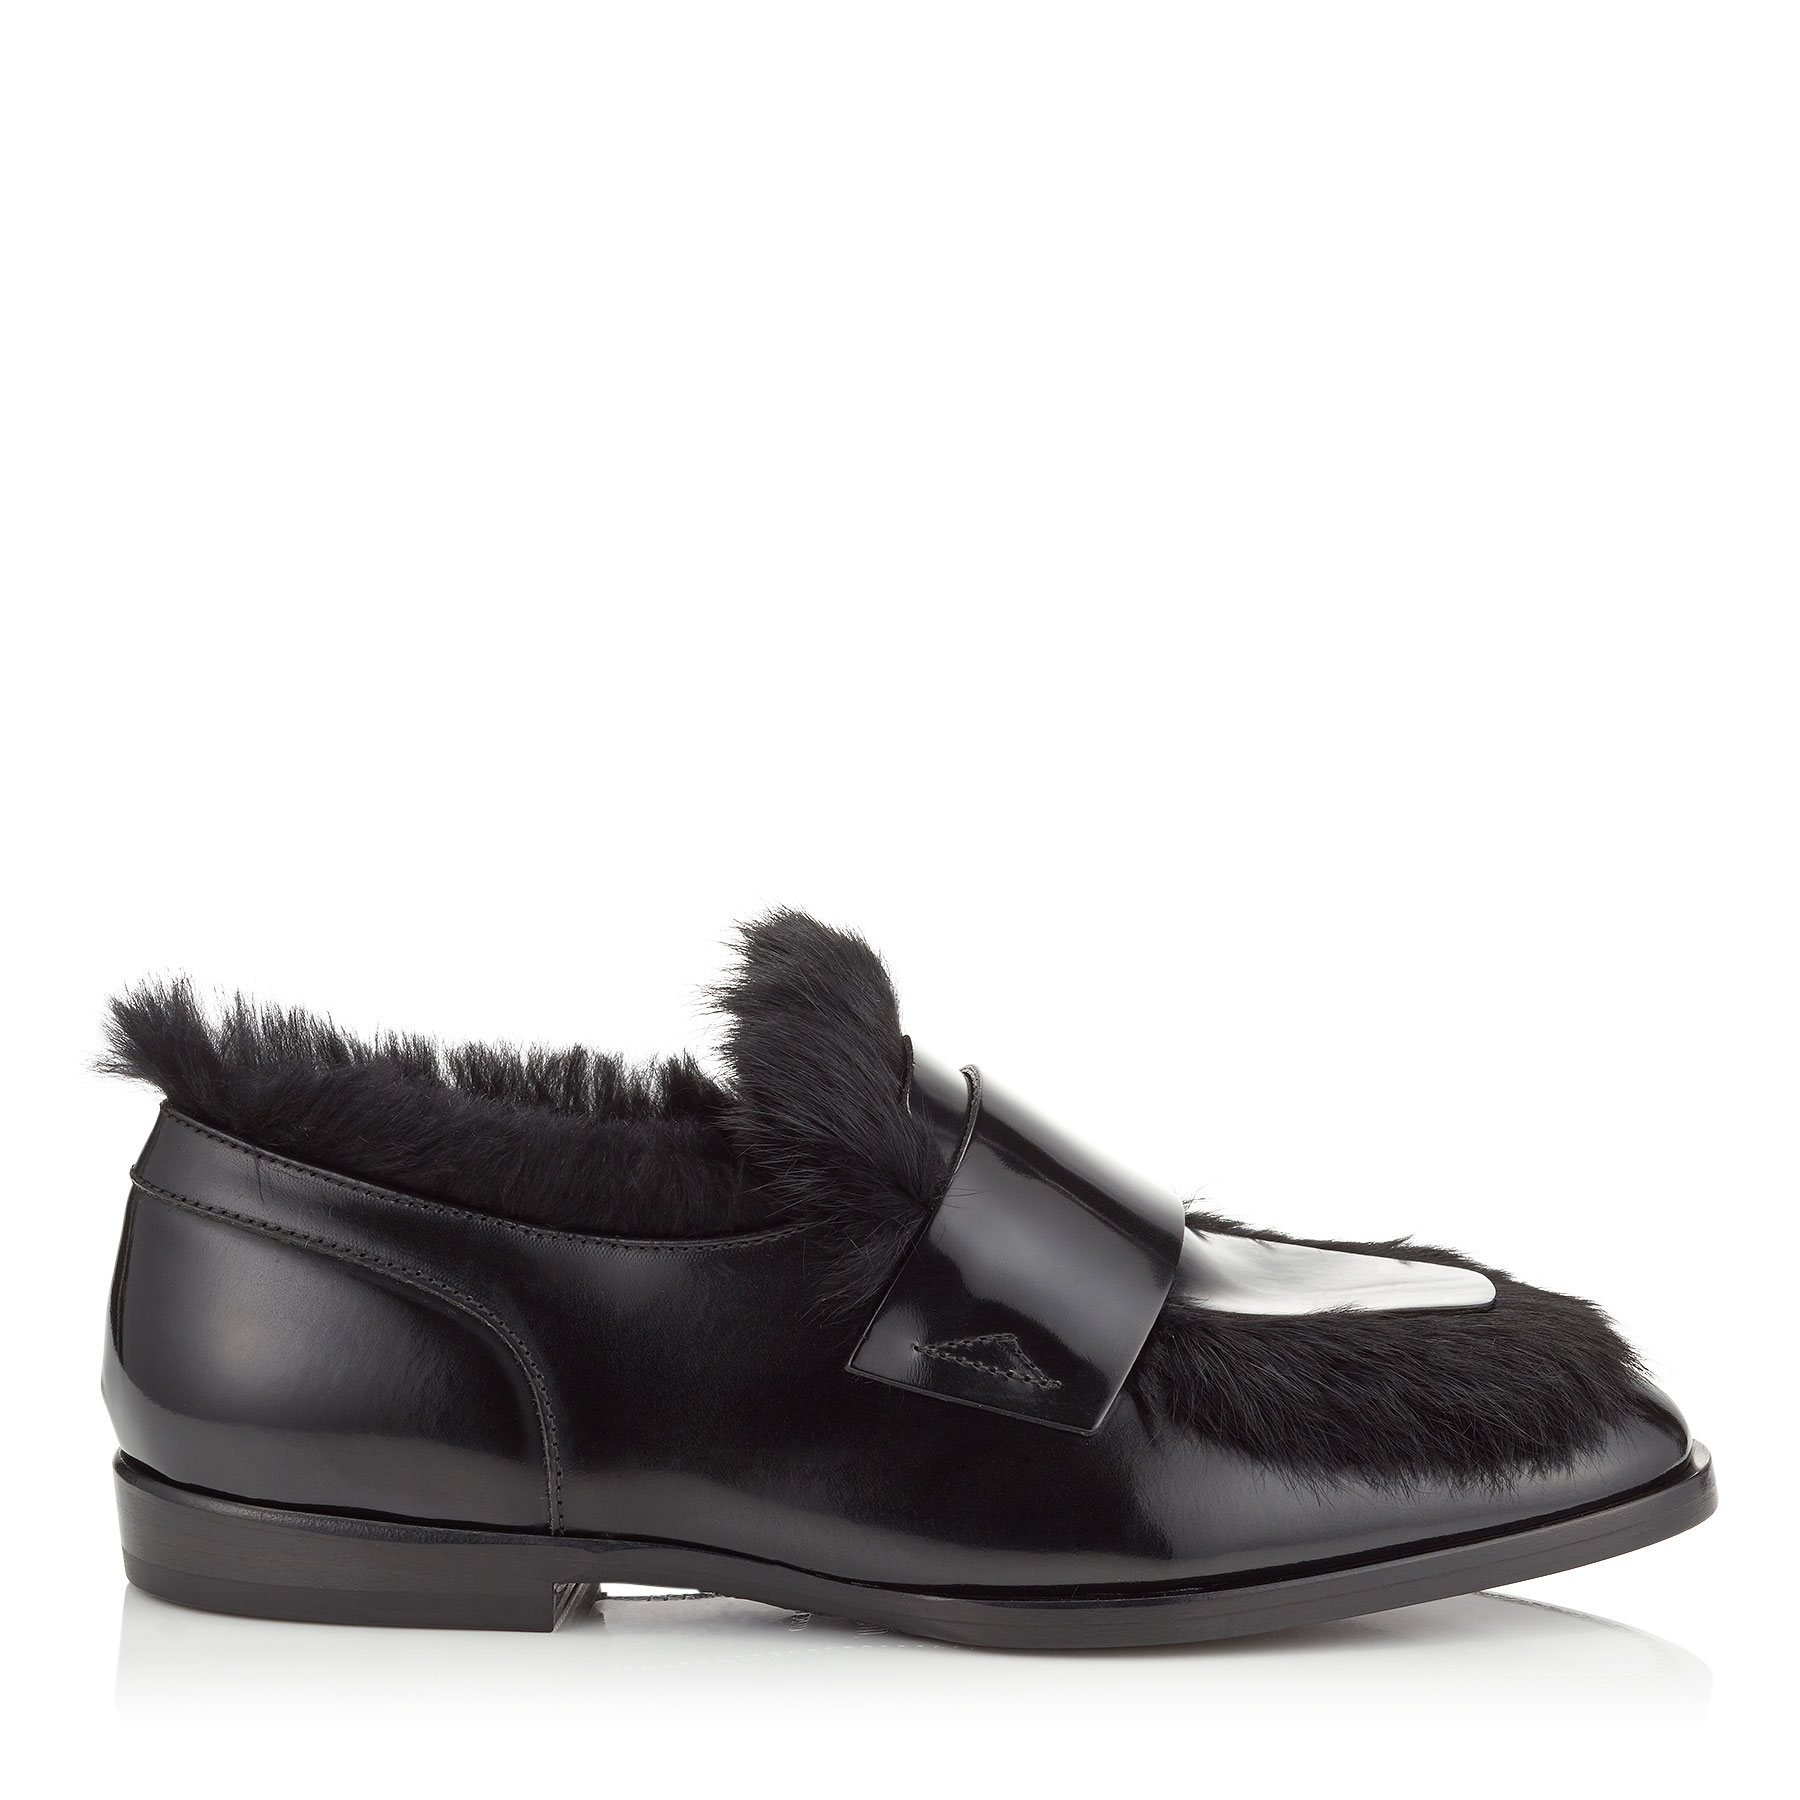 TEDI/F Black Brushed Off Leather Loafers with Rabbit Fur by Jimmy Choo